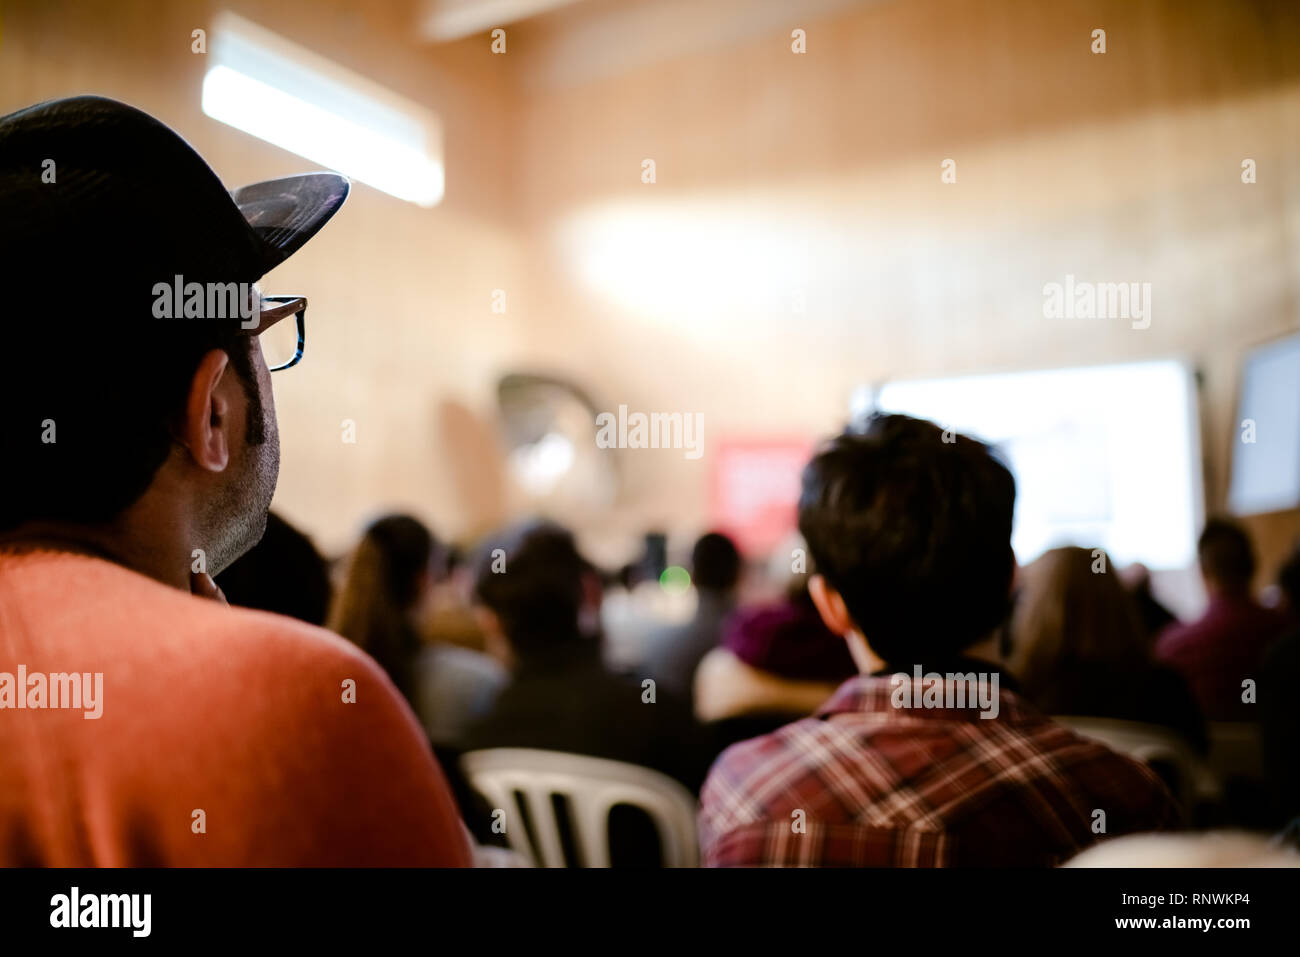 Young people attending a business conference meeting, unfocused background. - Stock Image